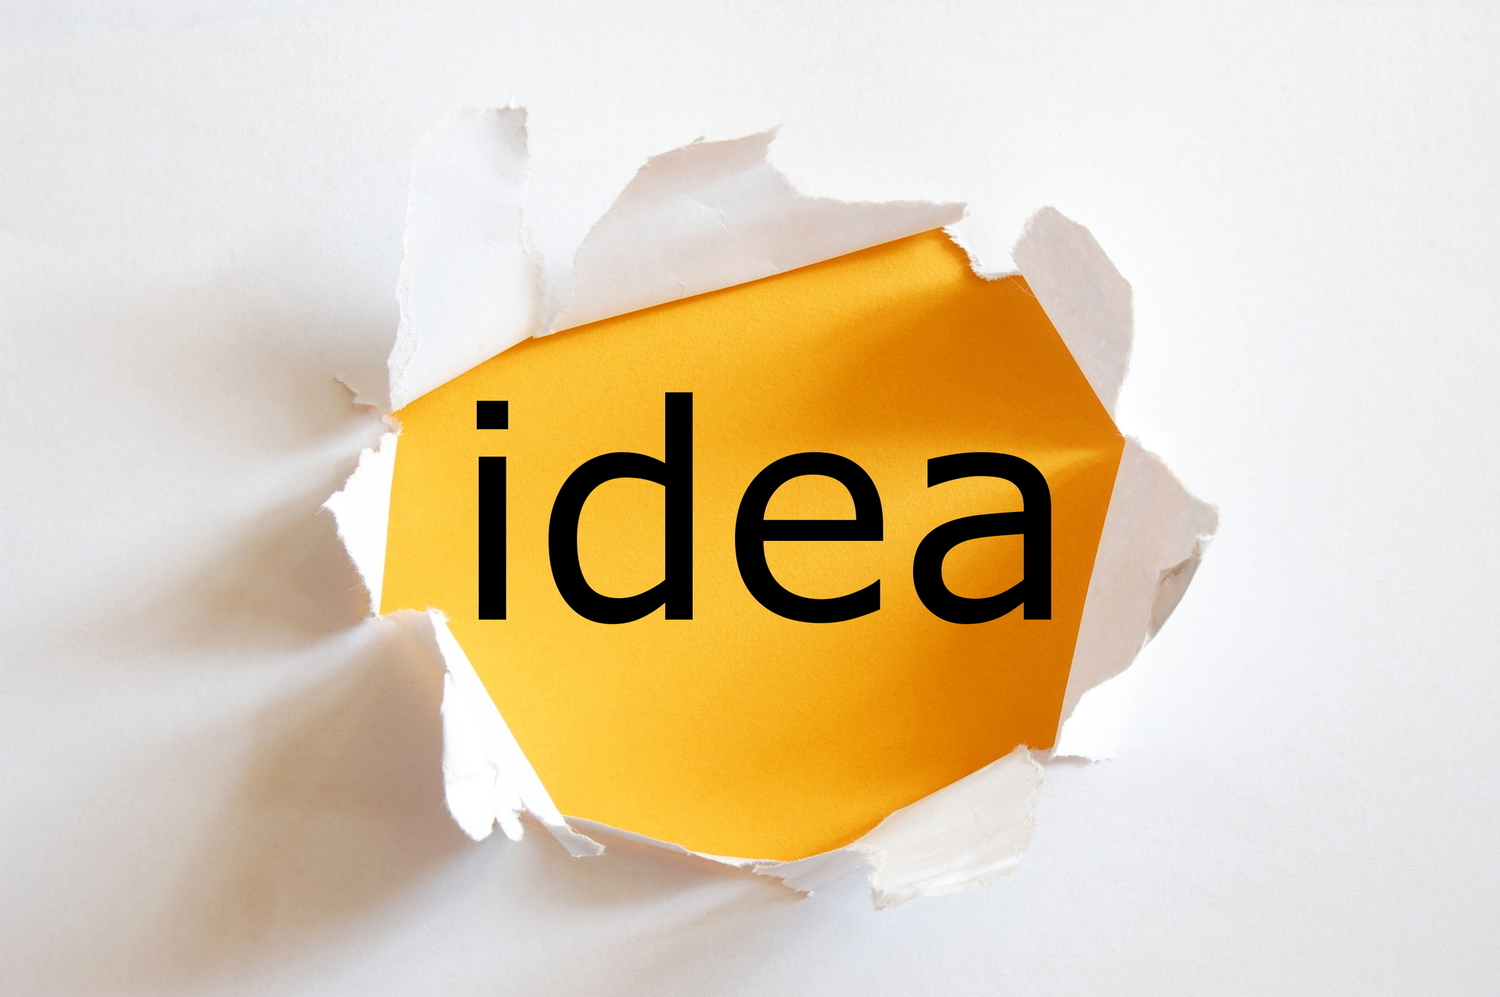 What is an idea